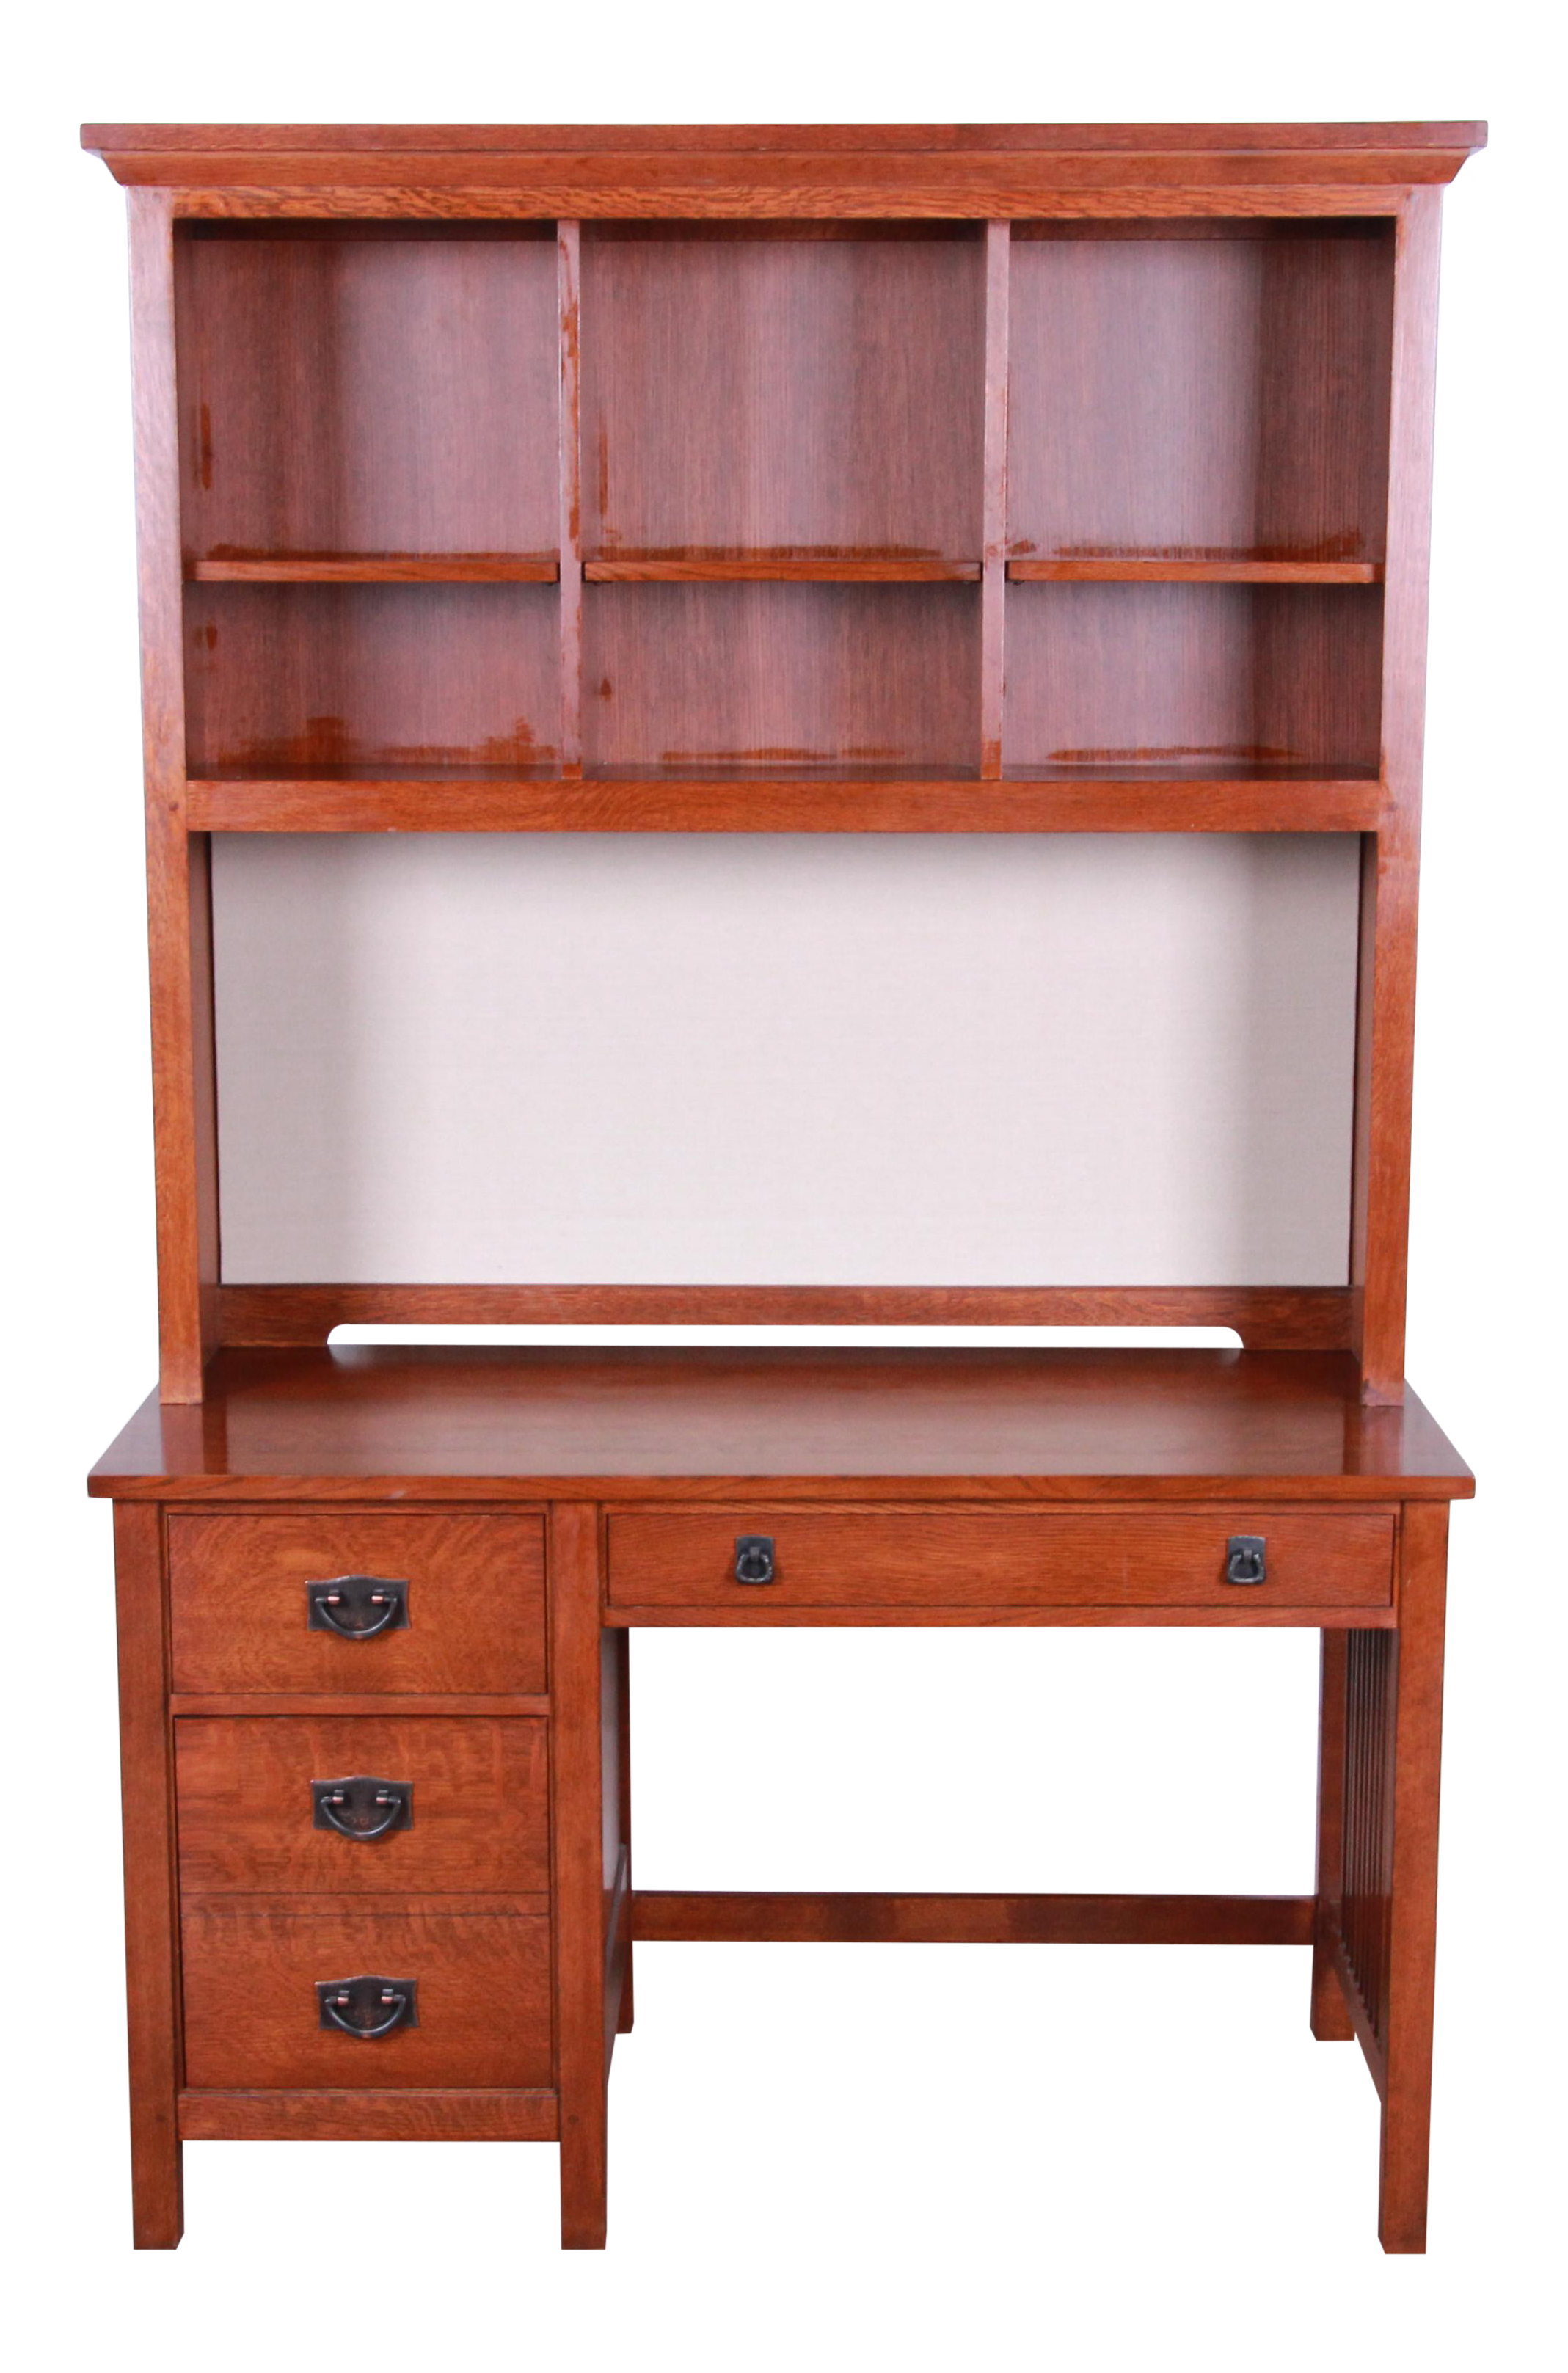 Stickley Mission Oak Desk With Lighted Hutch Top, 1990s